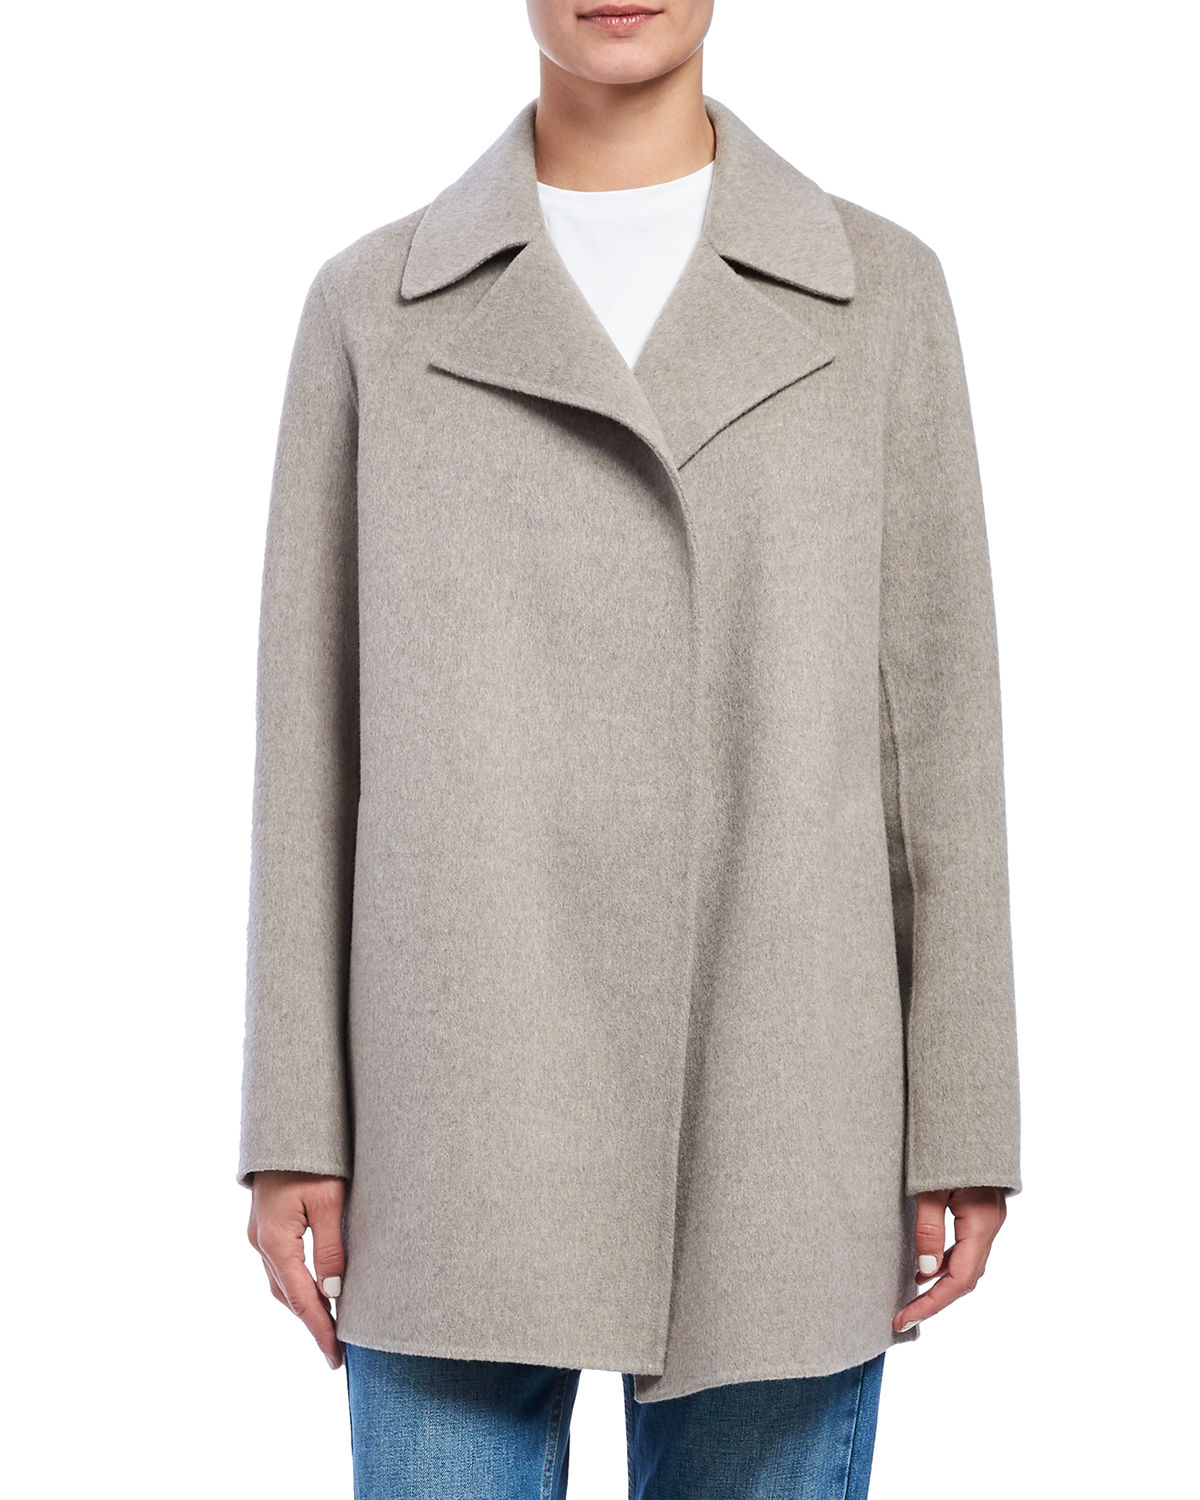 Theory New Divide Wool/cashmere Coat In Taupe Grey